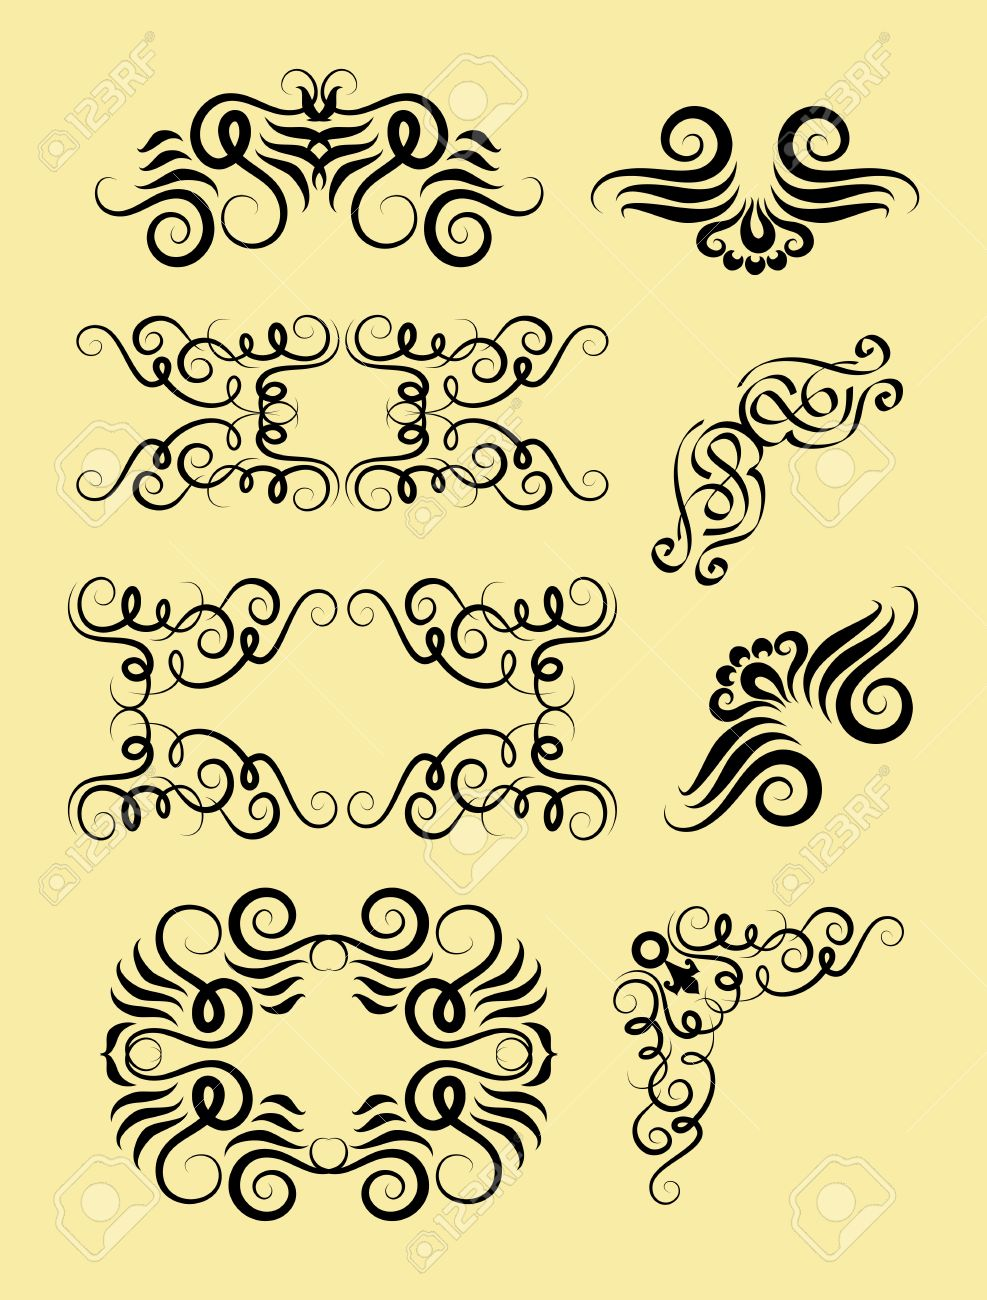 Corner Element Ornament Decorations Good Use For Tattoo Design Border Frame Pattern